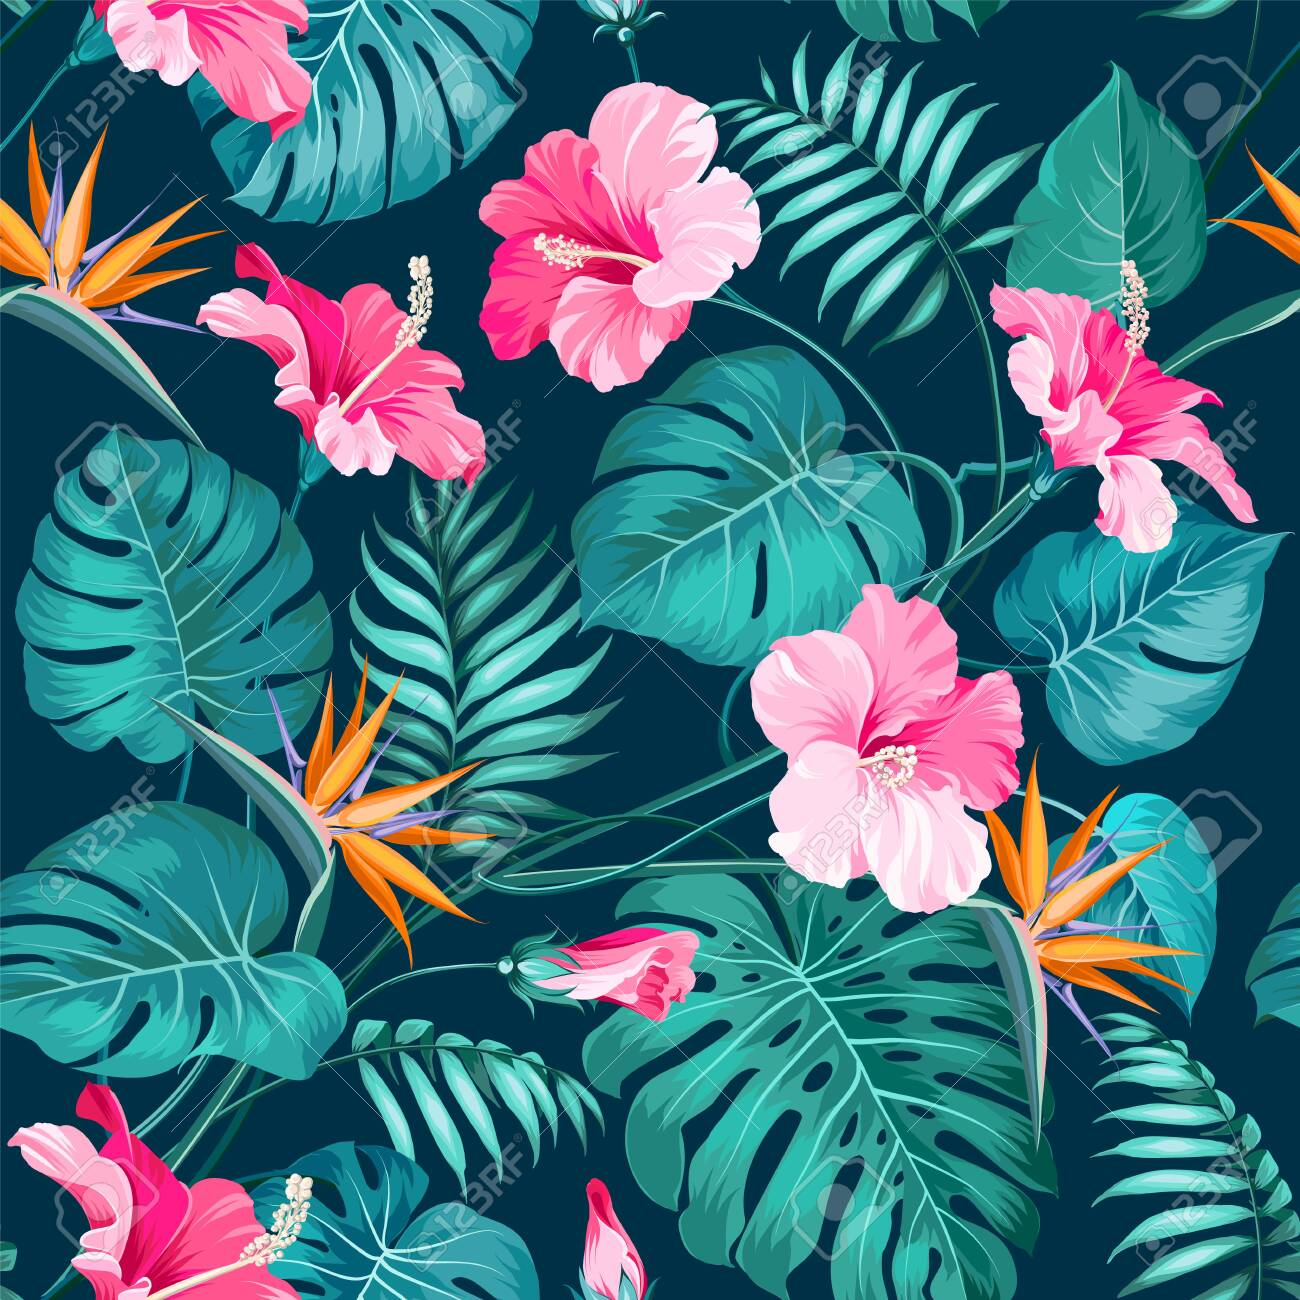 Blossom flowers for seamless pattern background. Tropical flower fashion pattern. Tropic flowers for nature background. Vector illustration. - 146019951